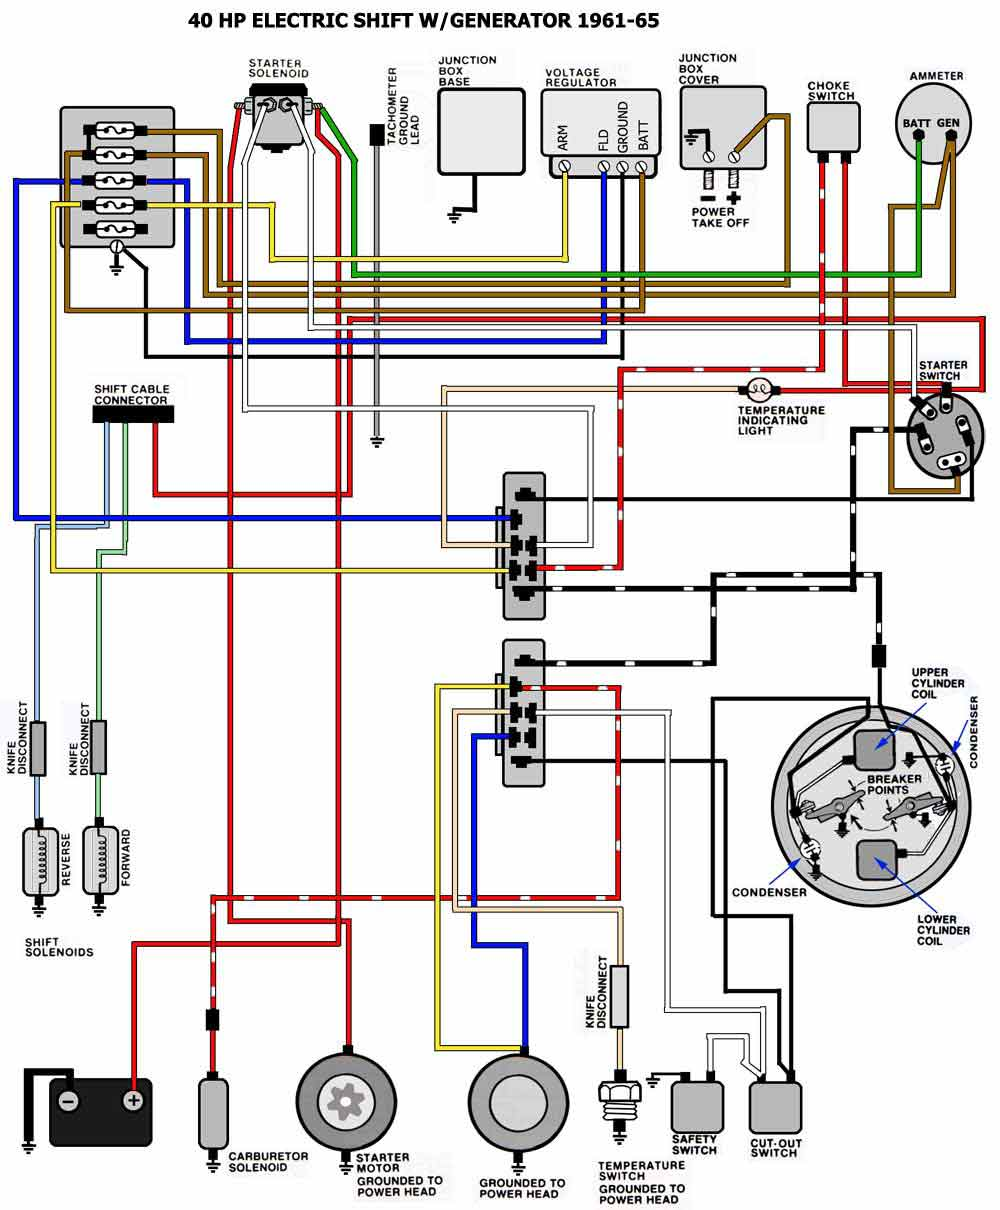 hight resolution of evinrude johnson outboard wiring diagrams mastertech marine 40 hp electric shift